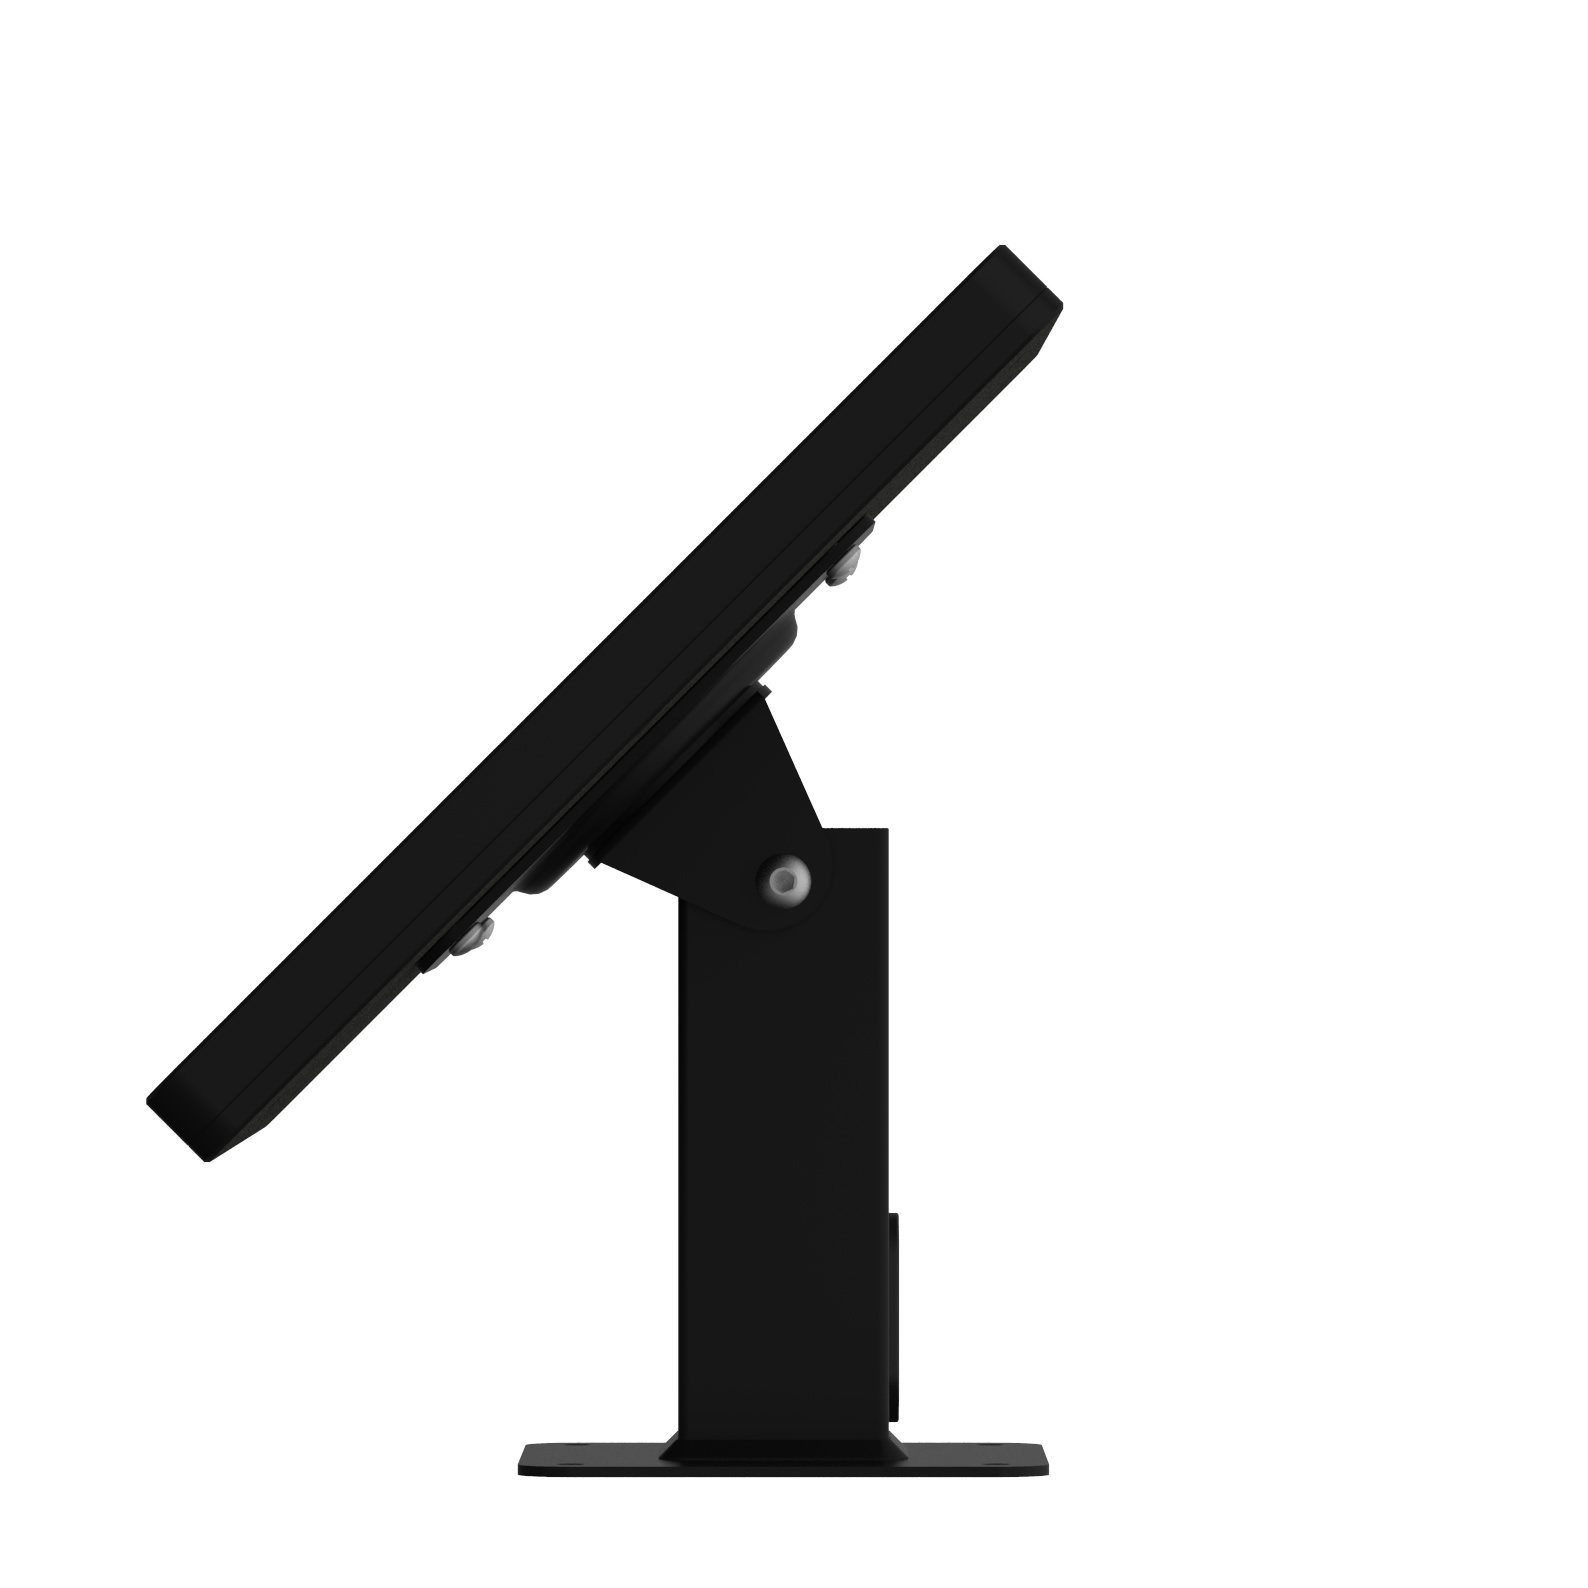 iPad (5th Gen) 9.7/Pro, Air 1/2 Black Covered Home Button Rotating & Tilting Desk/Table Mount [Bundle] by VidaMount (Image #5)